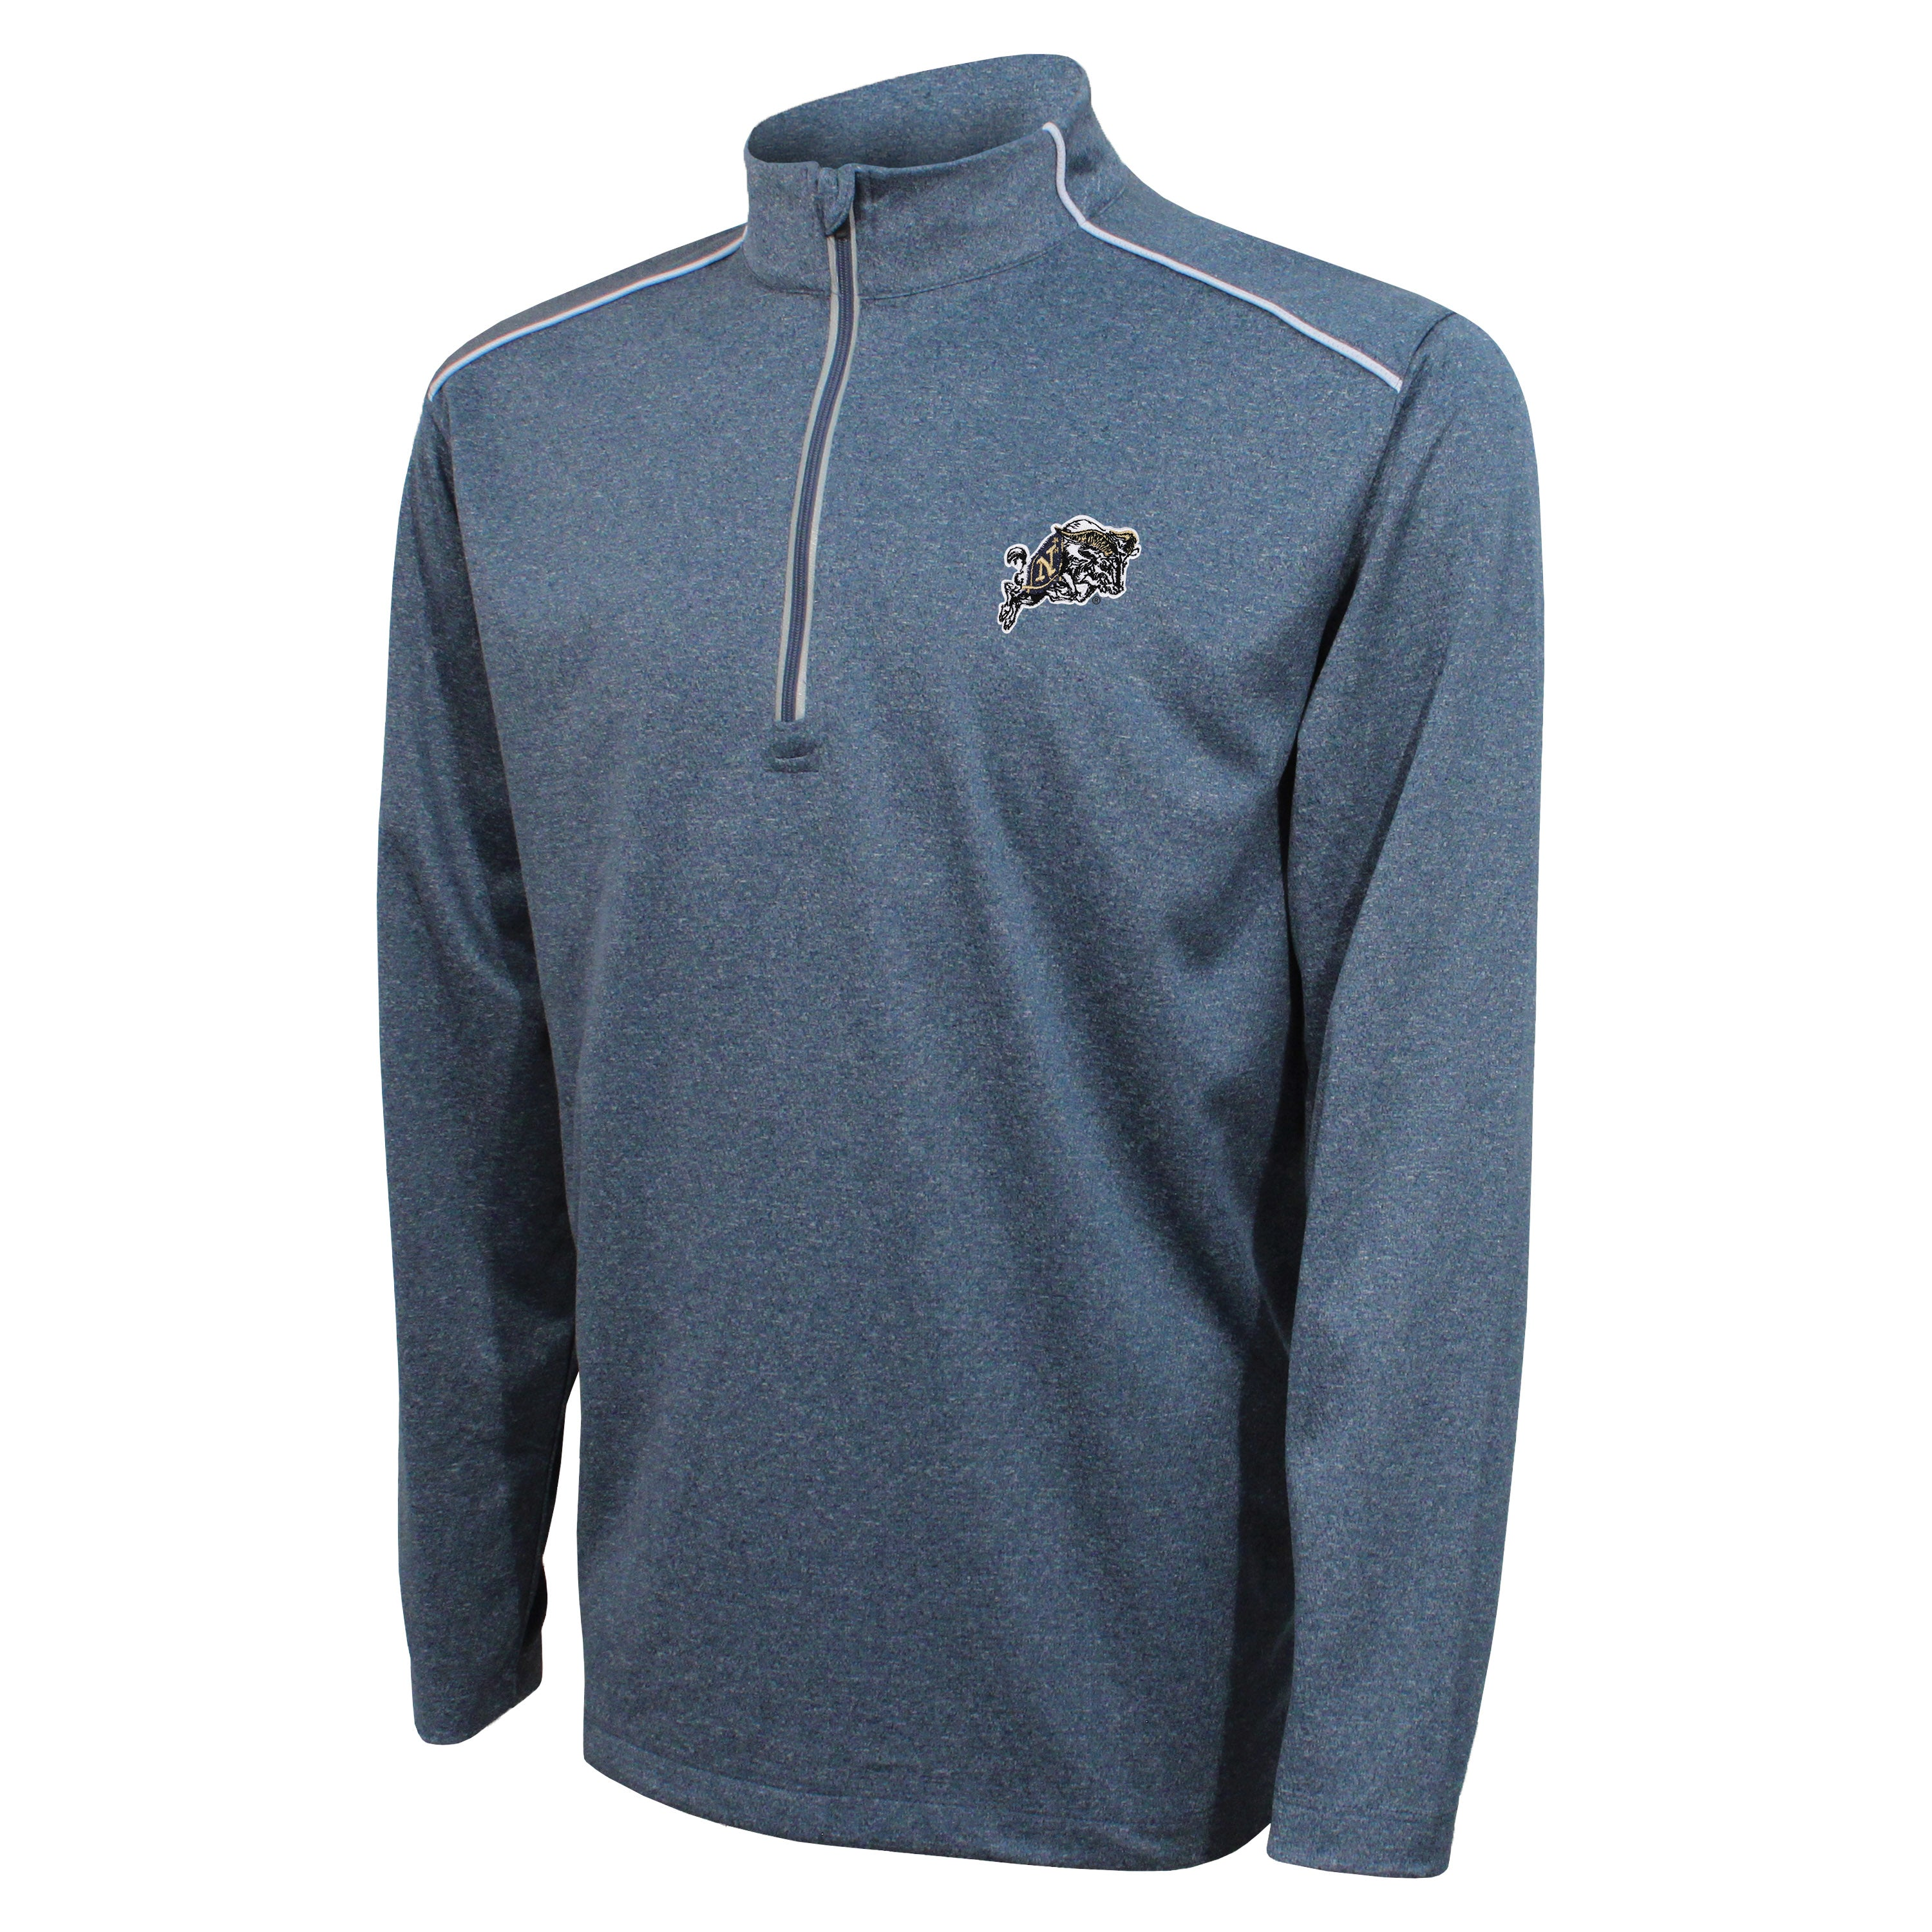 Crable Naval Academy Men's Navy Quarter Zip With Piping